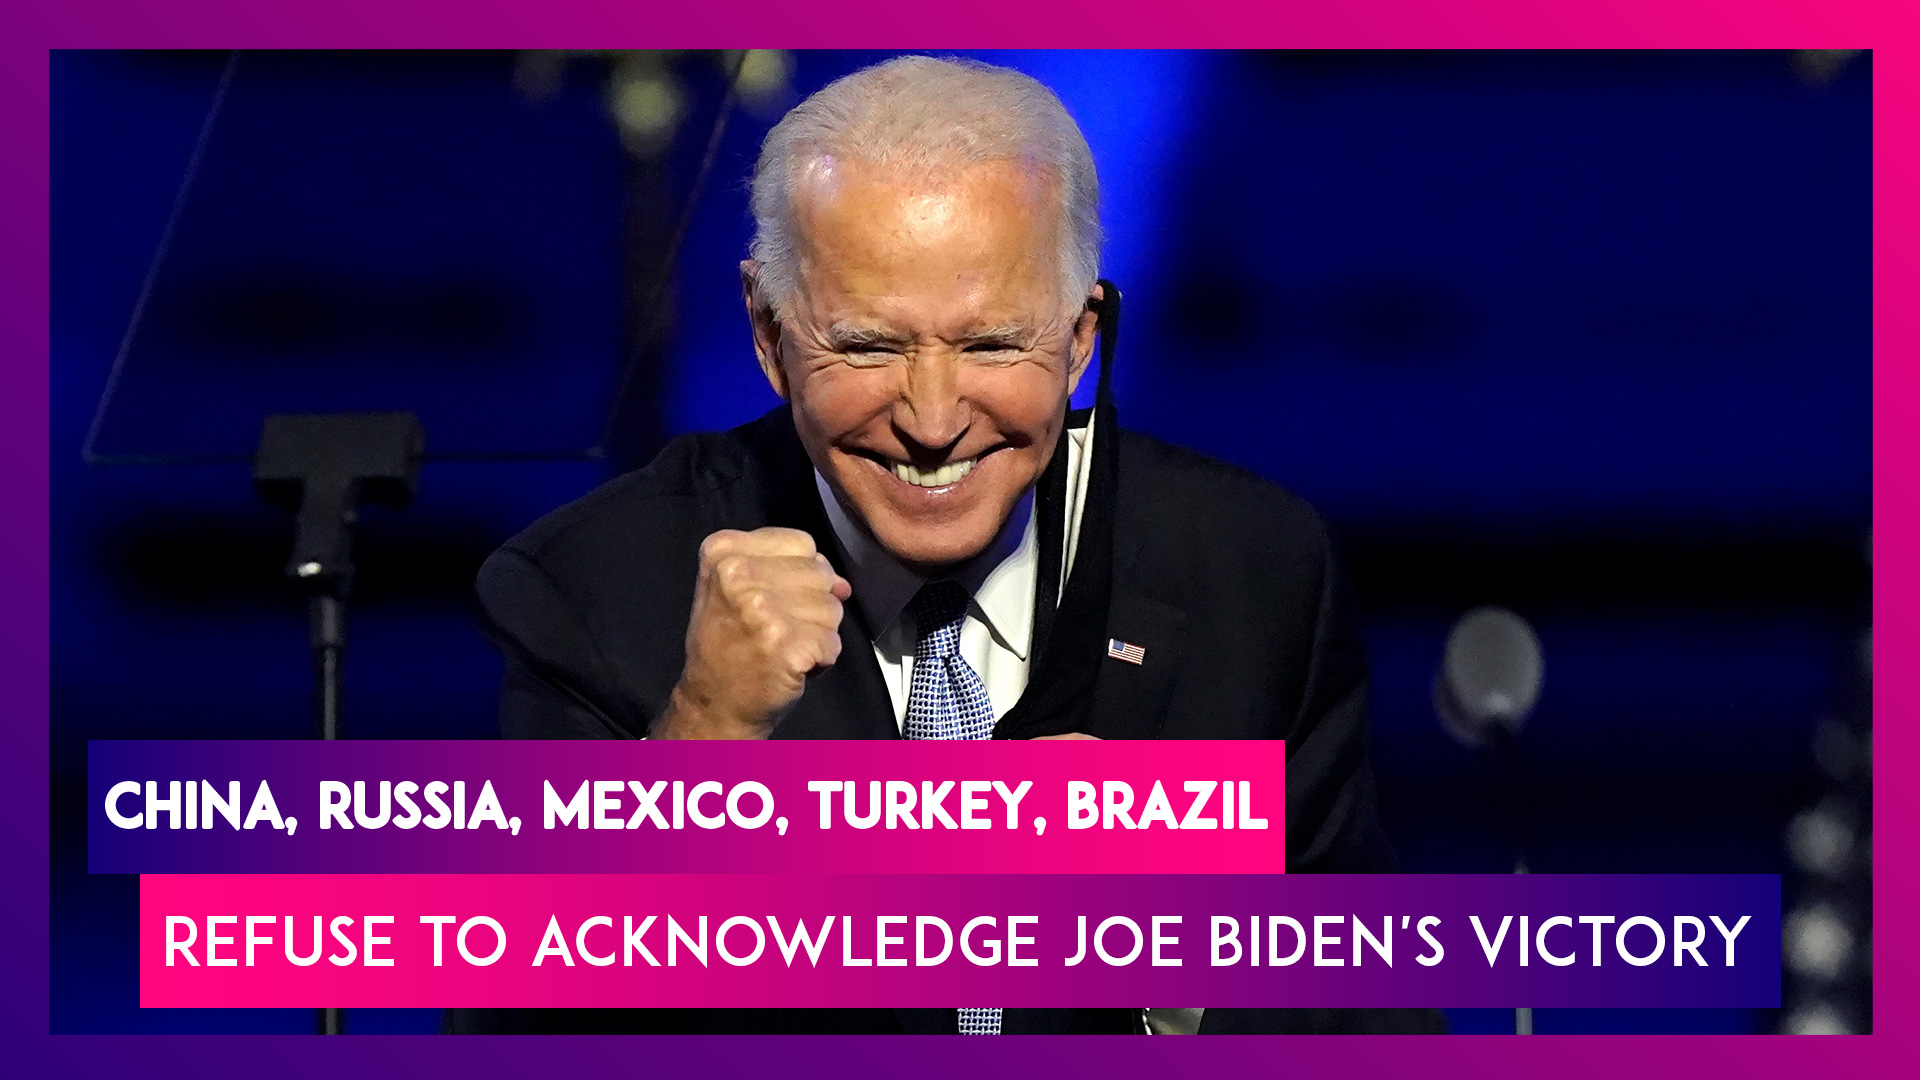 China, Russia, Mexico, Turkey & Brazil Yet To Acknowledge Joe Biden's Victory As The Next President Of United States